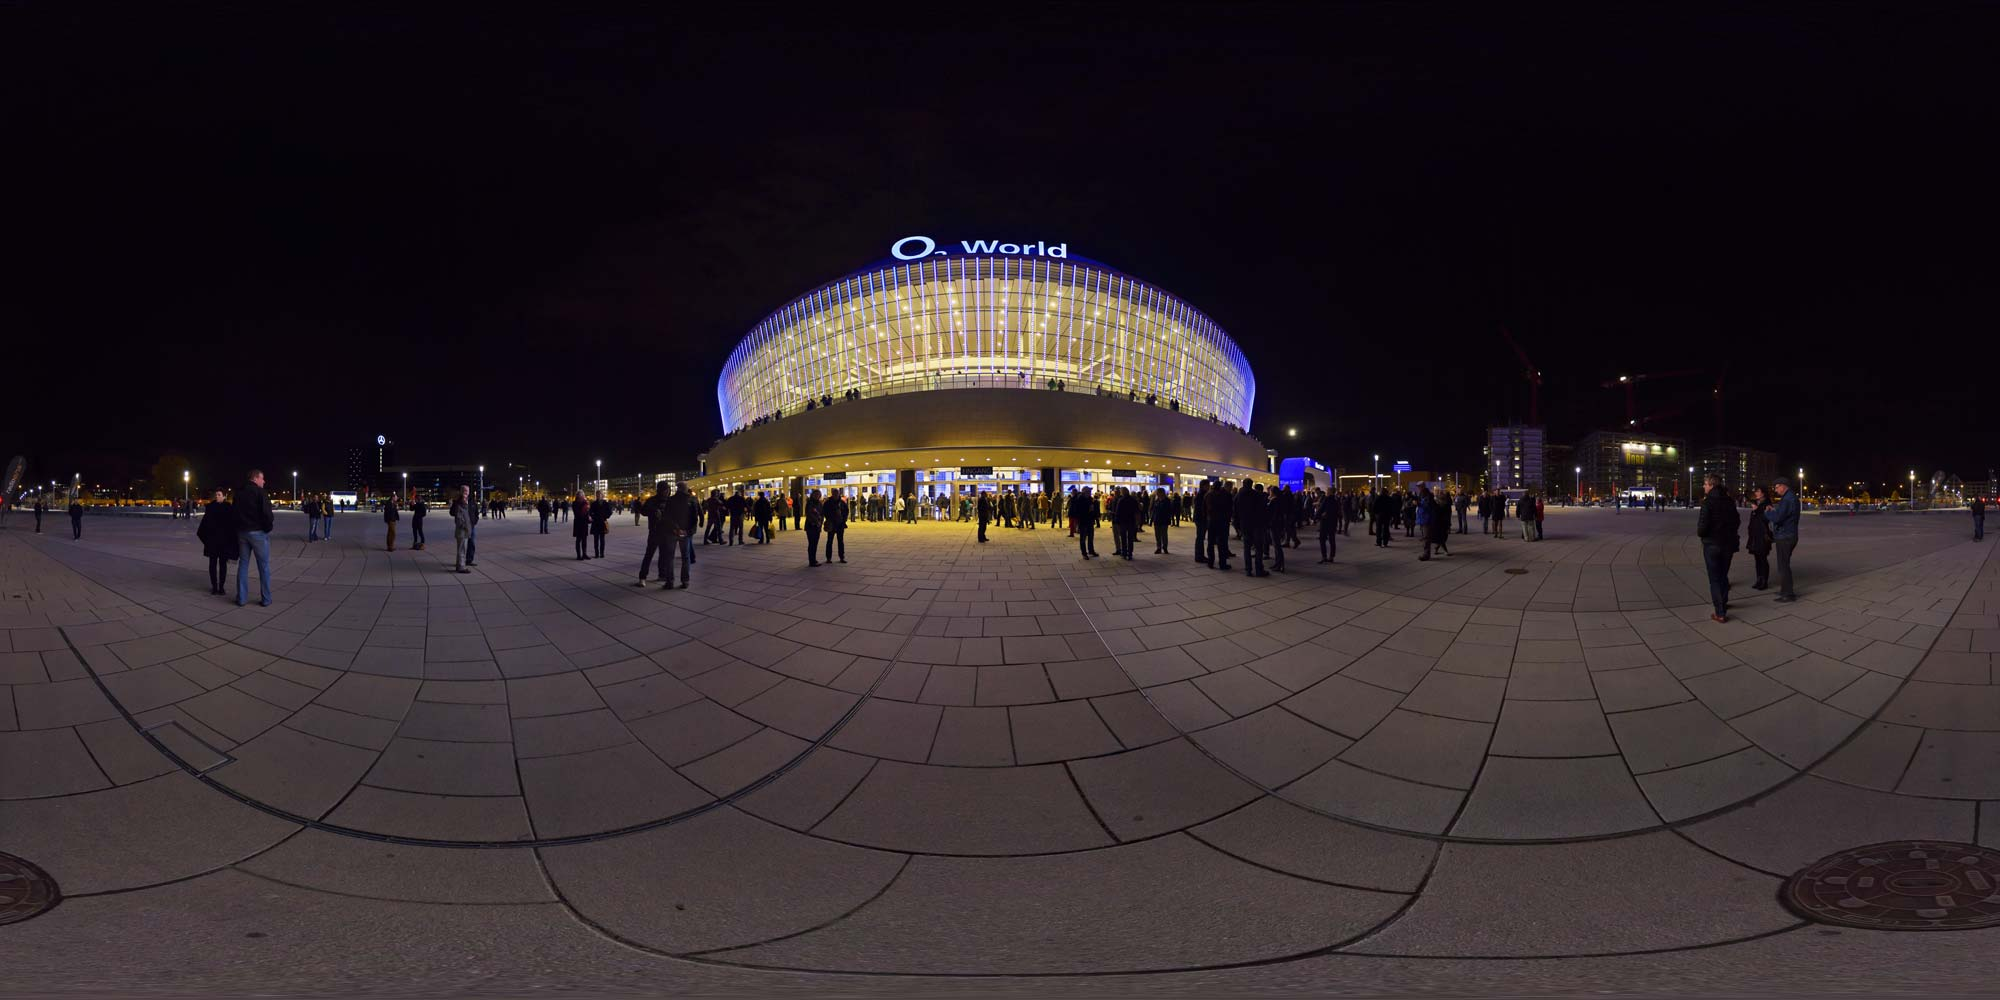 Panorama Berlin Festival of Lights - FOL 2013 O2 World